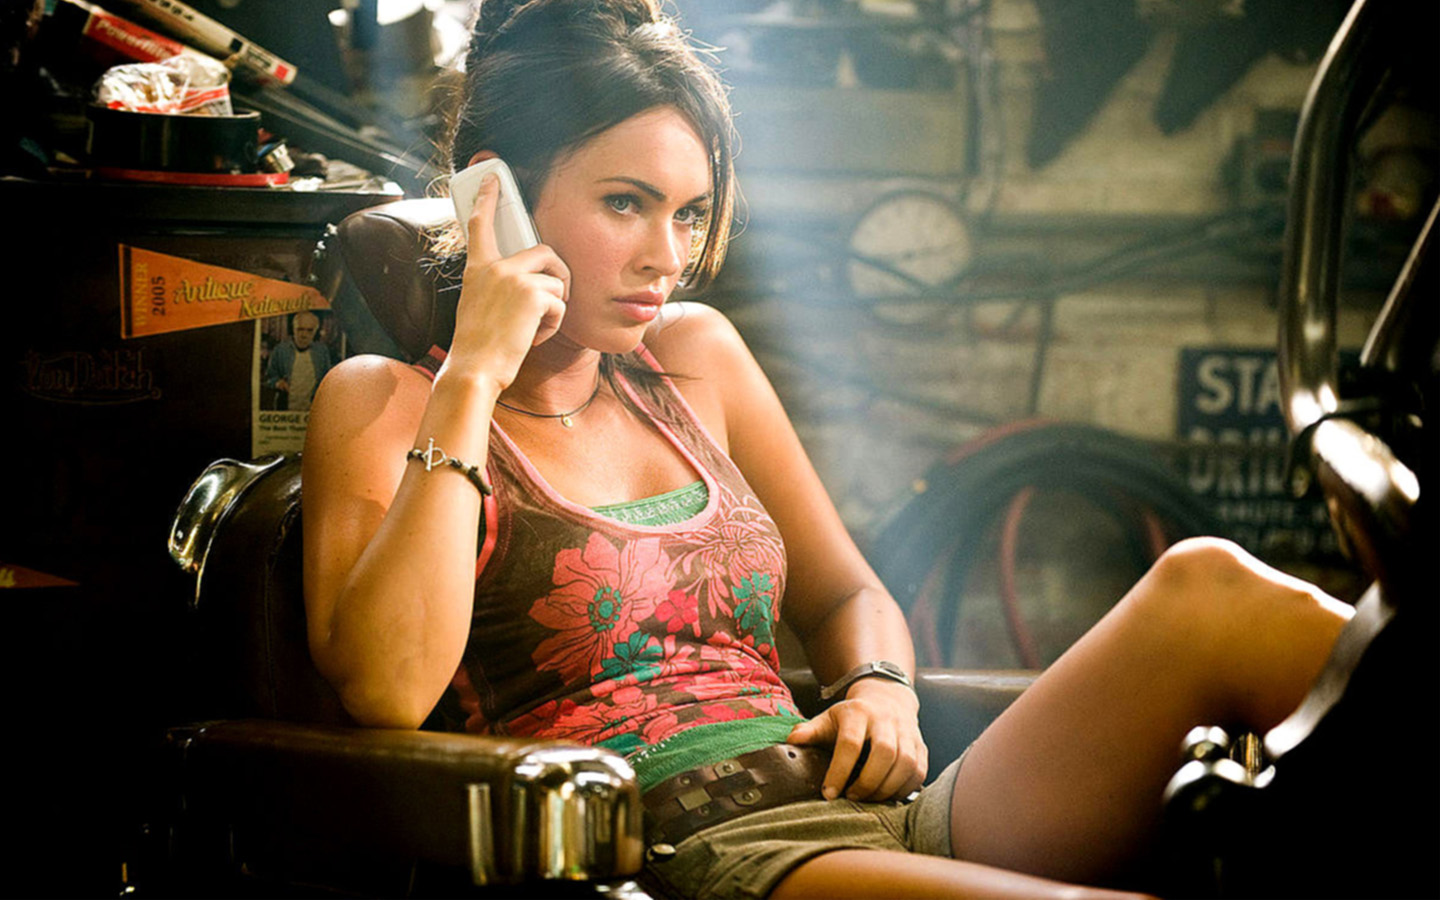 http://4.bp.blogspot.com/-a_yVJBkUkgI/TwgAmndcFjI/AAAAAAAAAlk/EQozyvXAmtE/s1600/Megan+Fox+Wallpapers+HD+2.jpg